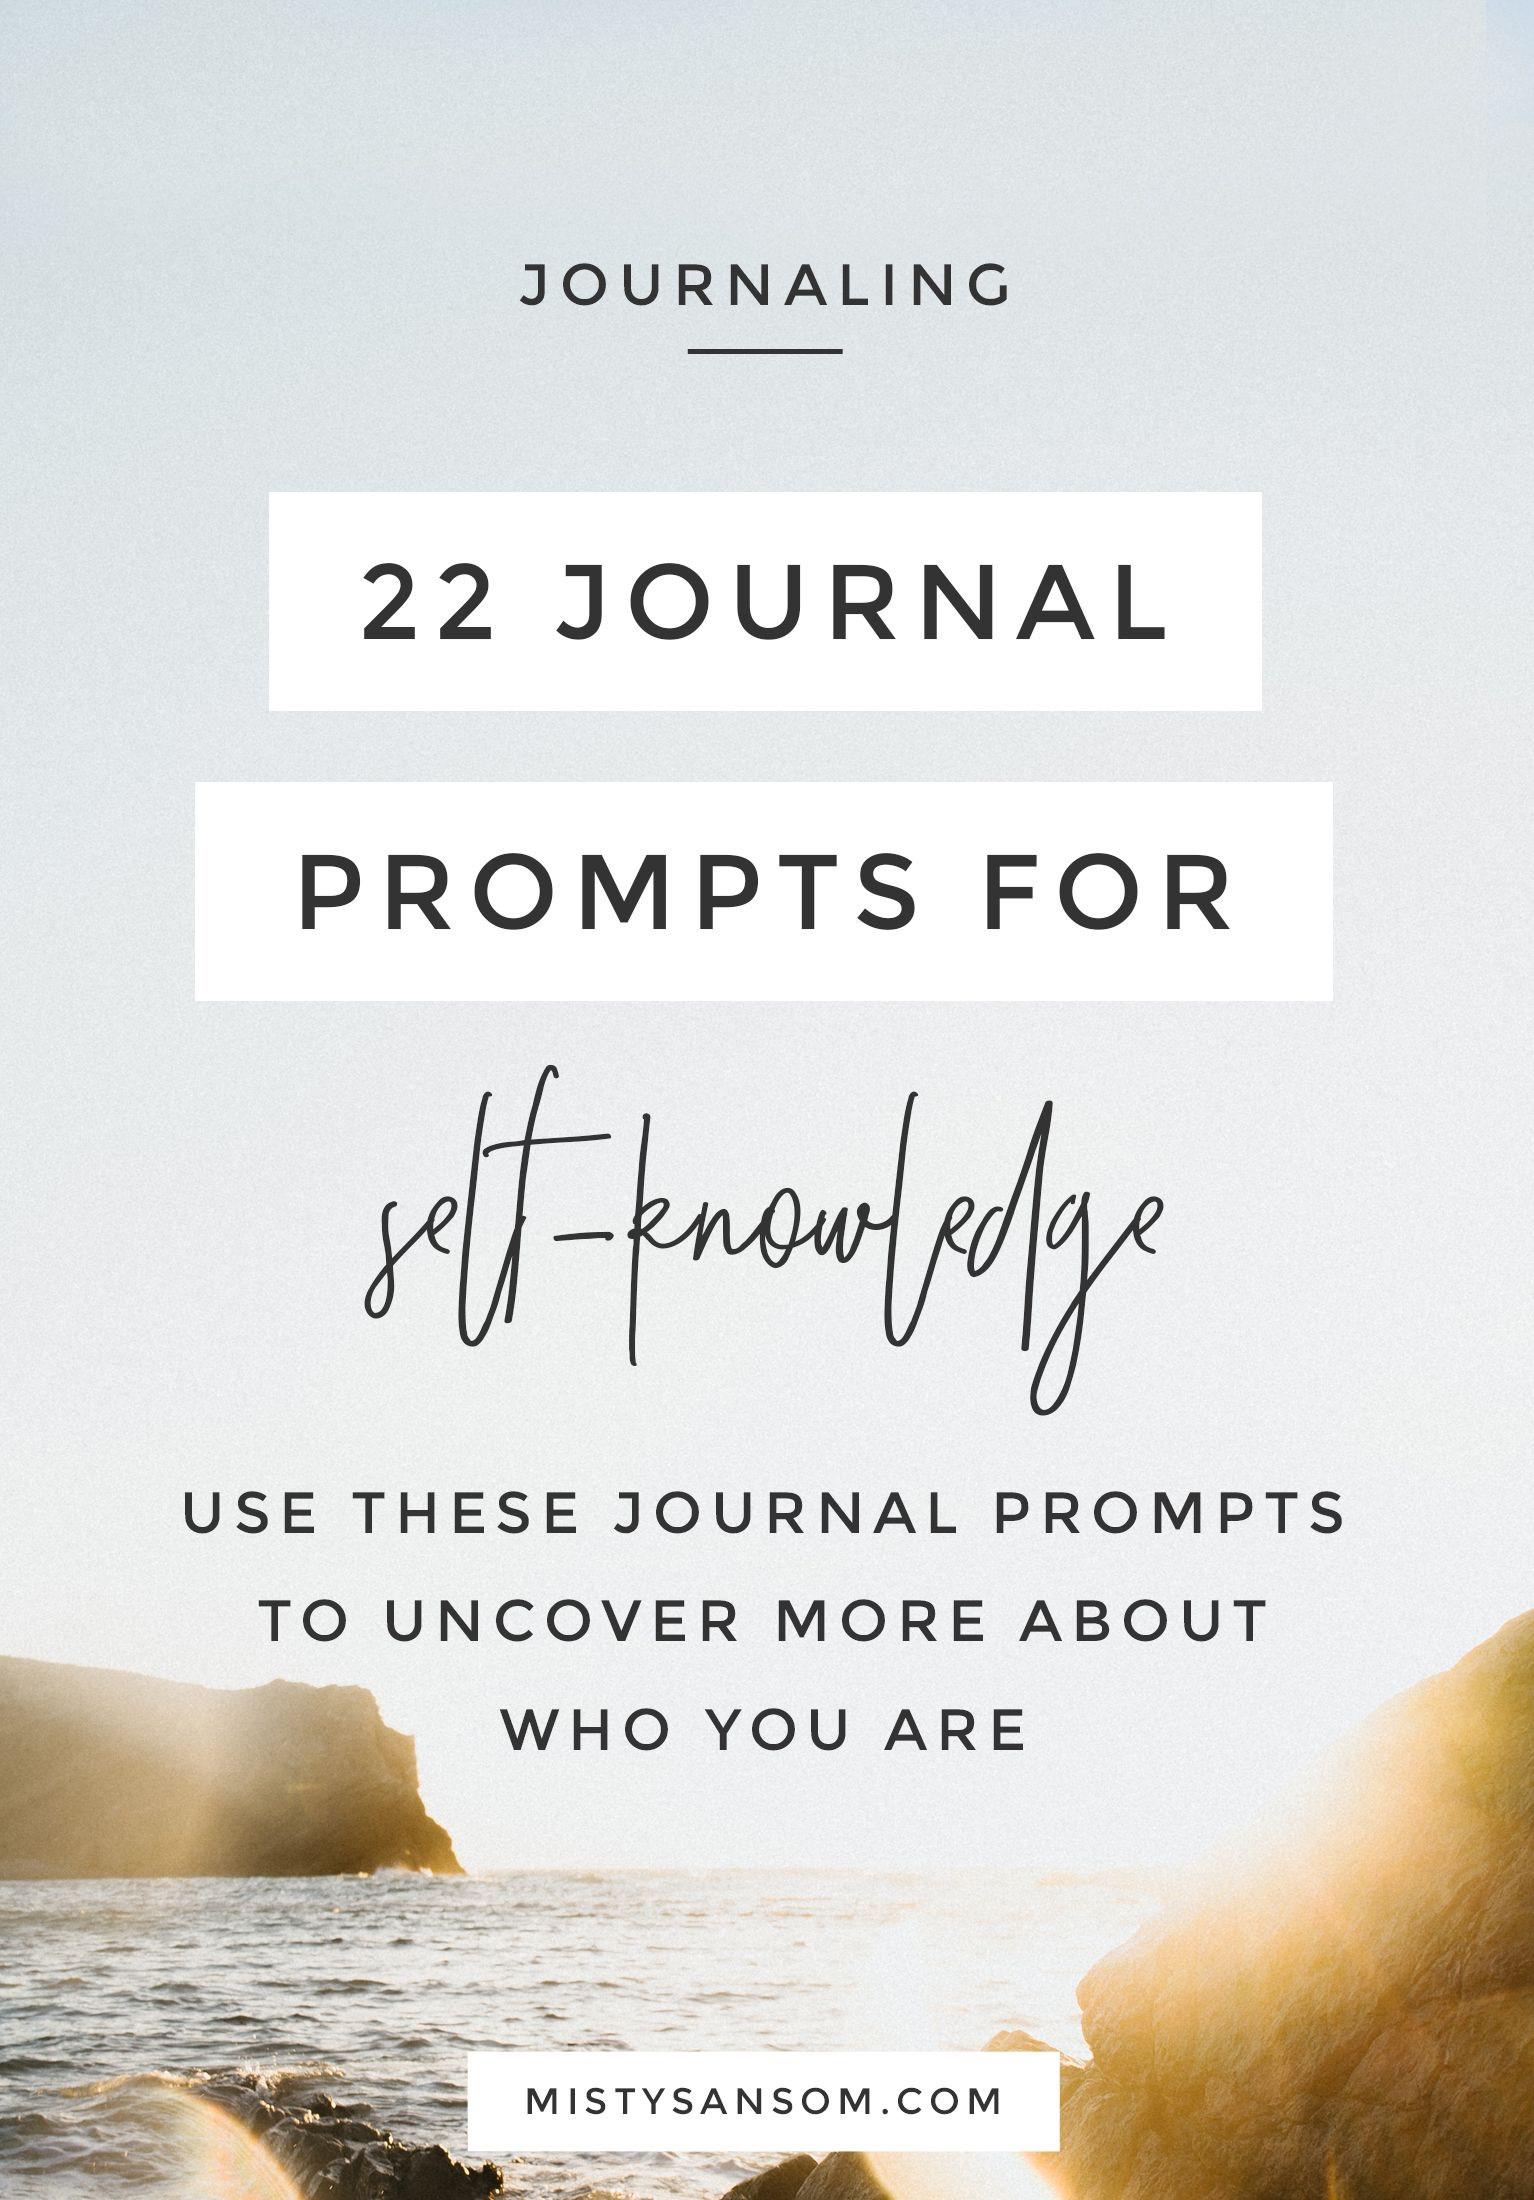 22 Journal Prompts For Deeper Self Knowledge